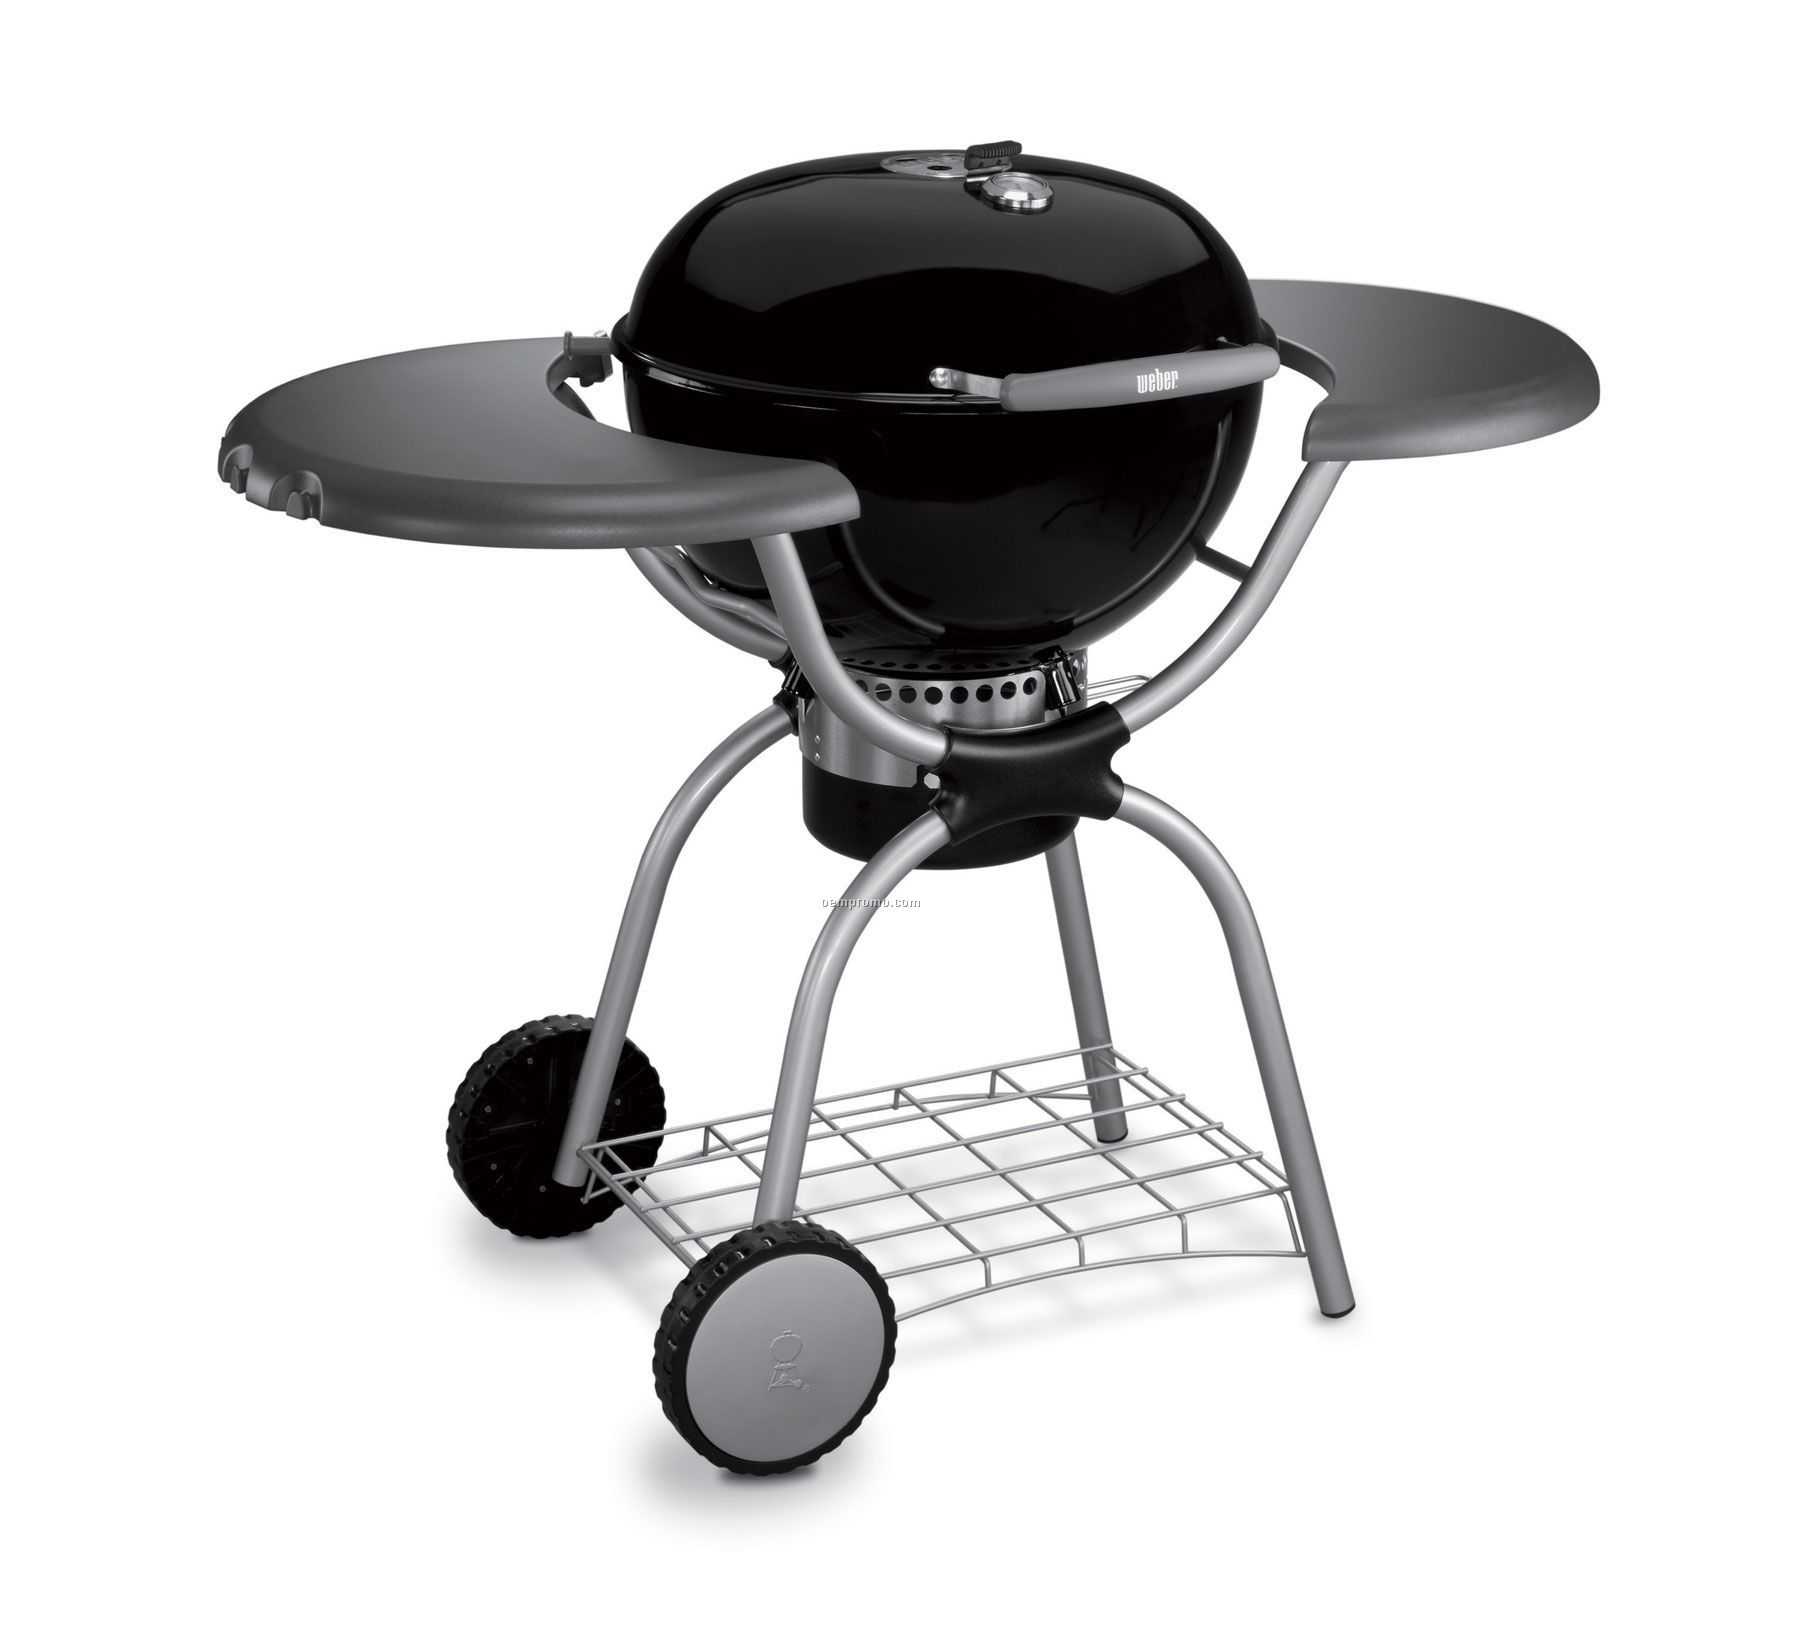 weber 22 1 2 one touch platinum charcoal grill china. Black Bedroom Furniture Sets. Home Design Ideas